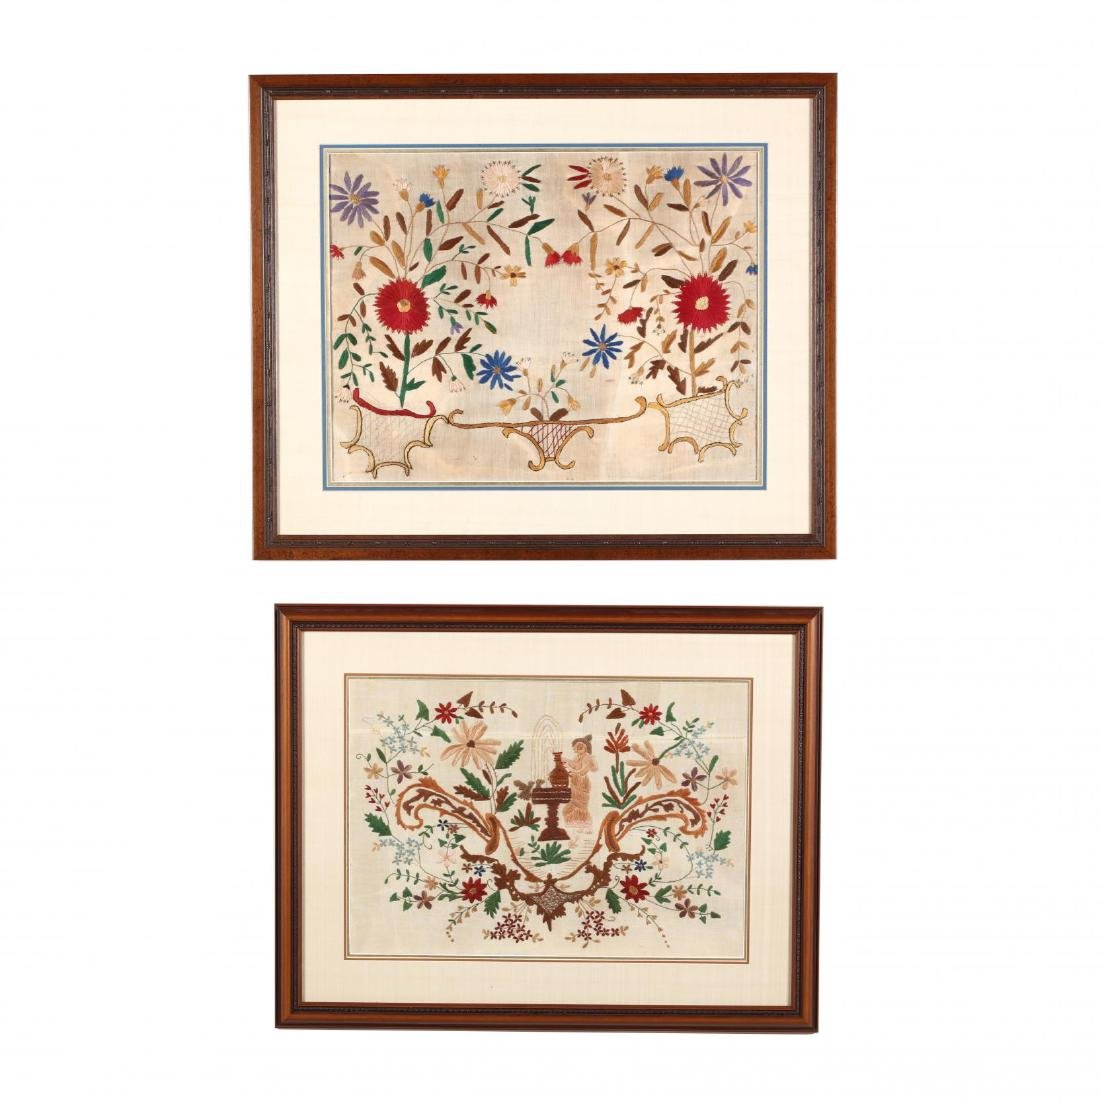 Two Vintage Cypriot Needlepoint Compositions